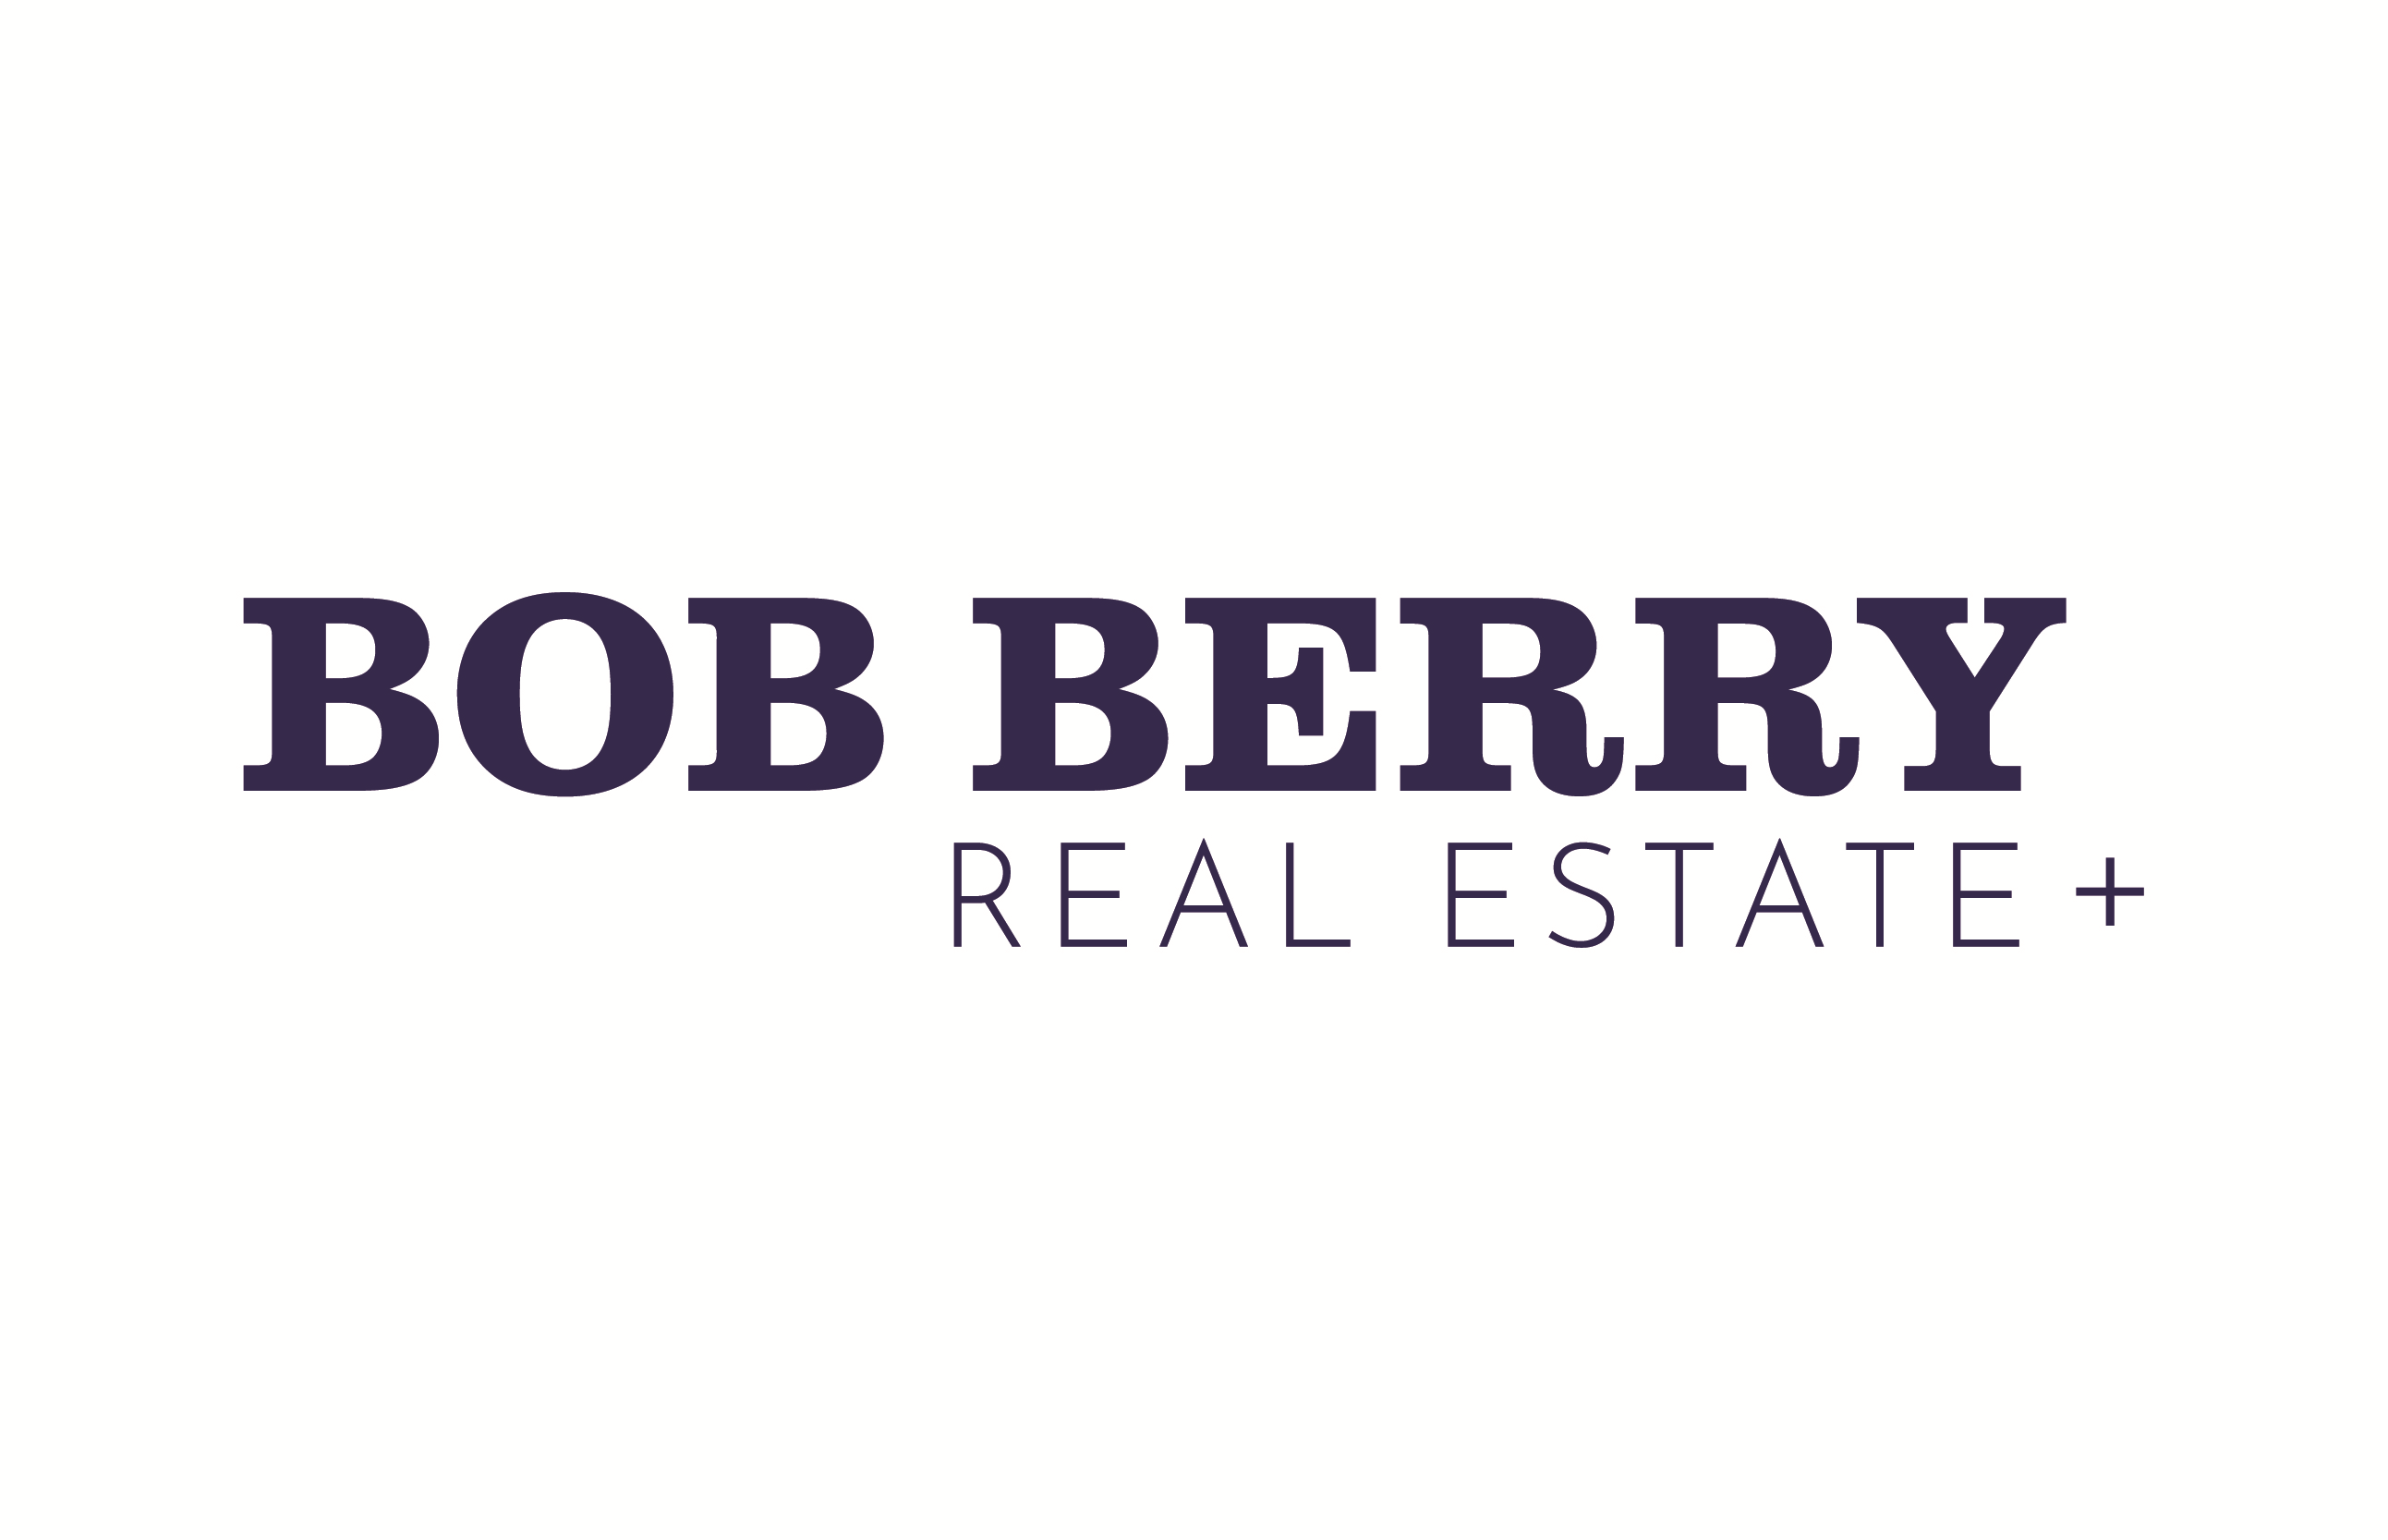 Bob Berry Real Estate, Dubbo, 2830